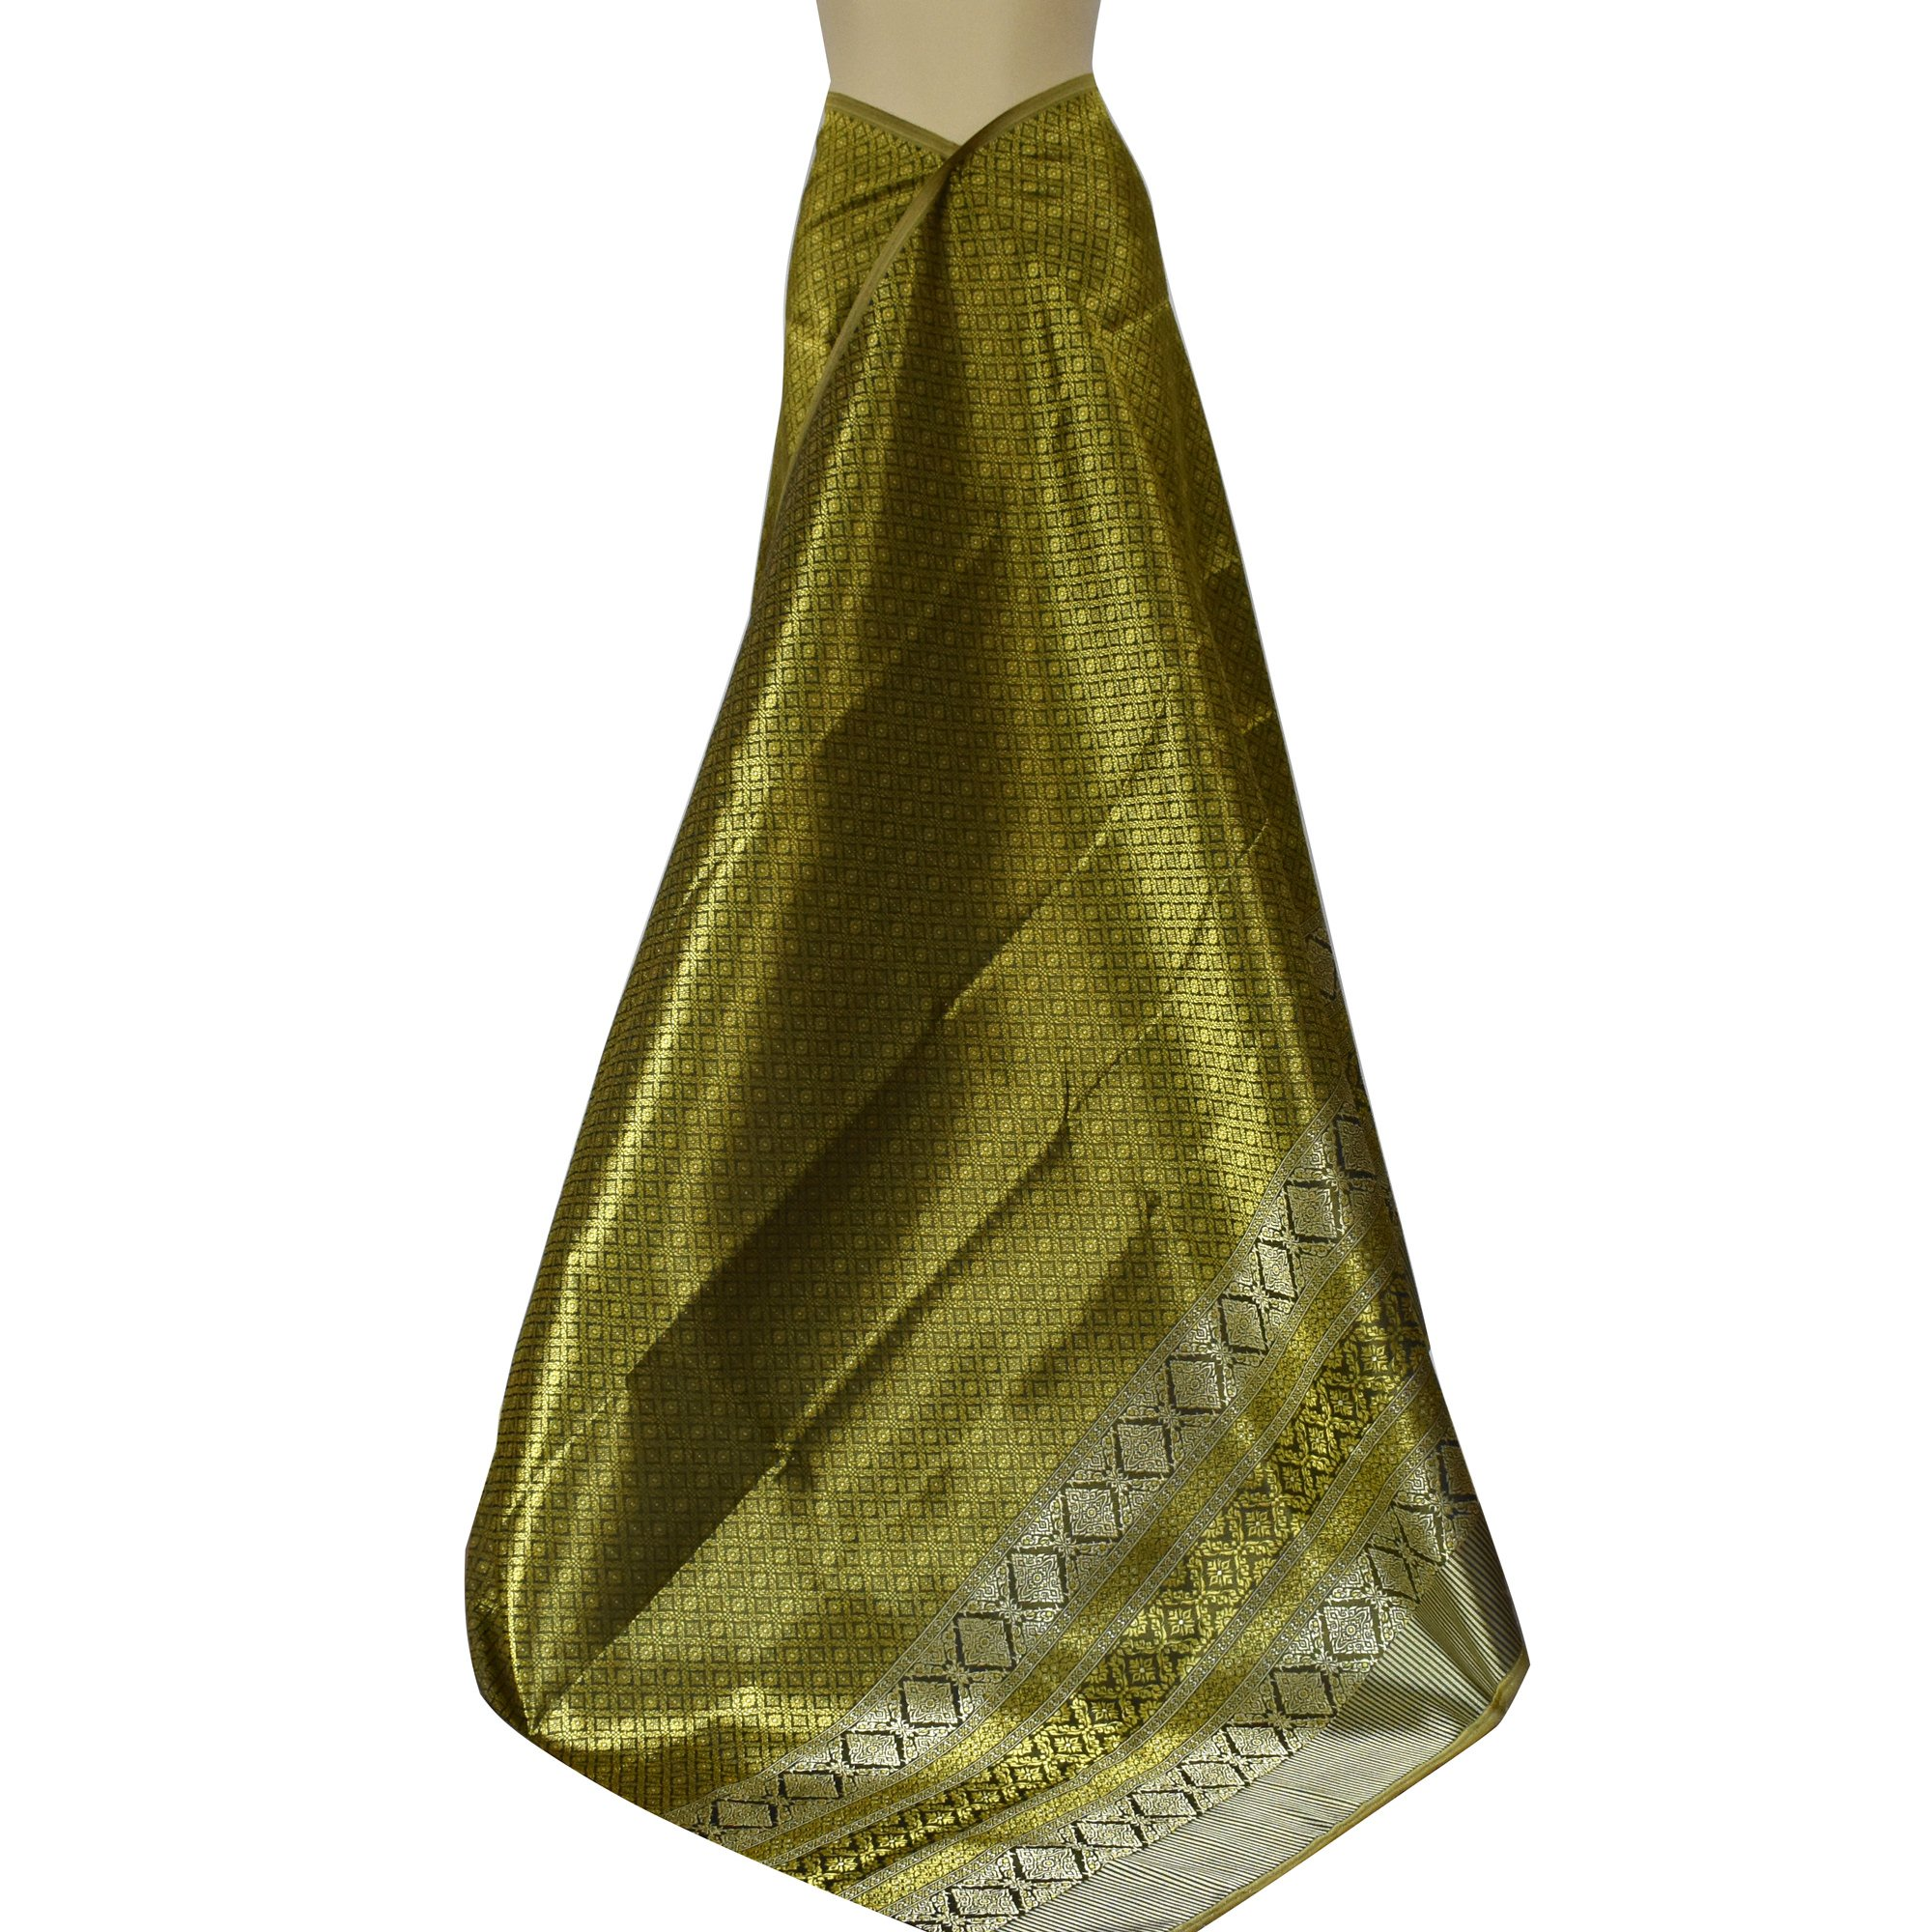 KunsA Thai Synthetic Silk Fabric Phumriang Traditional Yellow-Gold & Golden for Sarong/Dress 75''x 41'' by KunsA